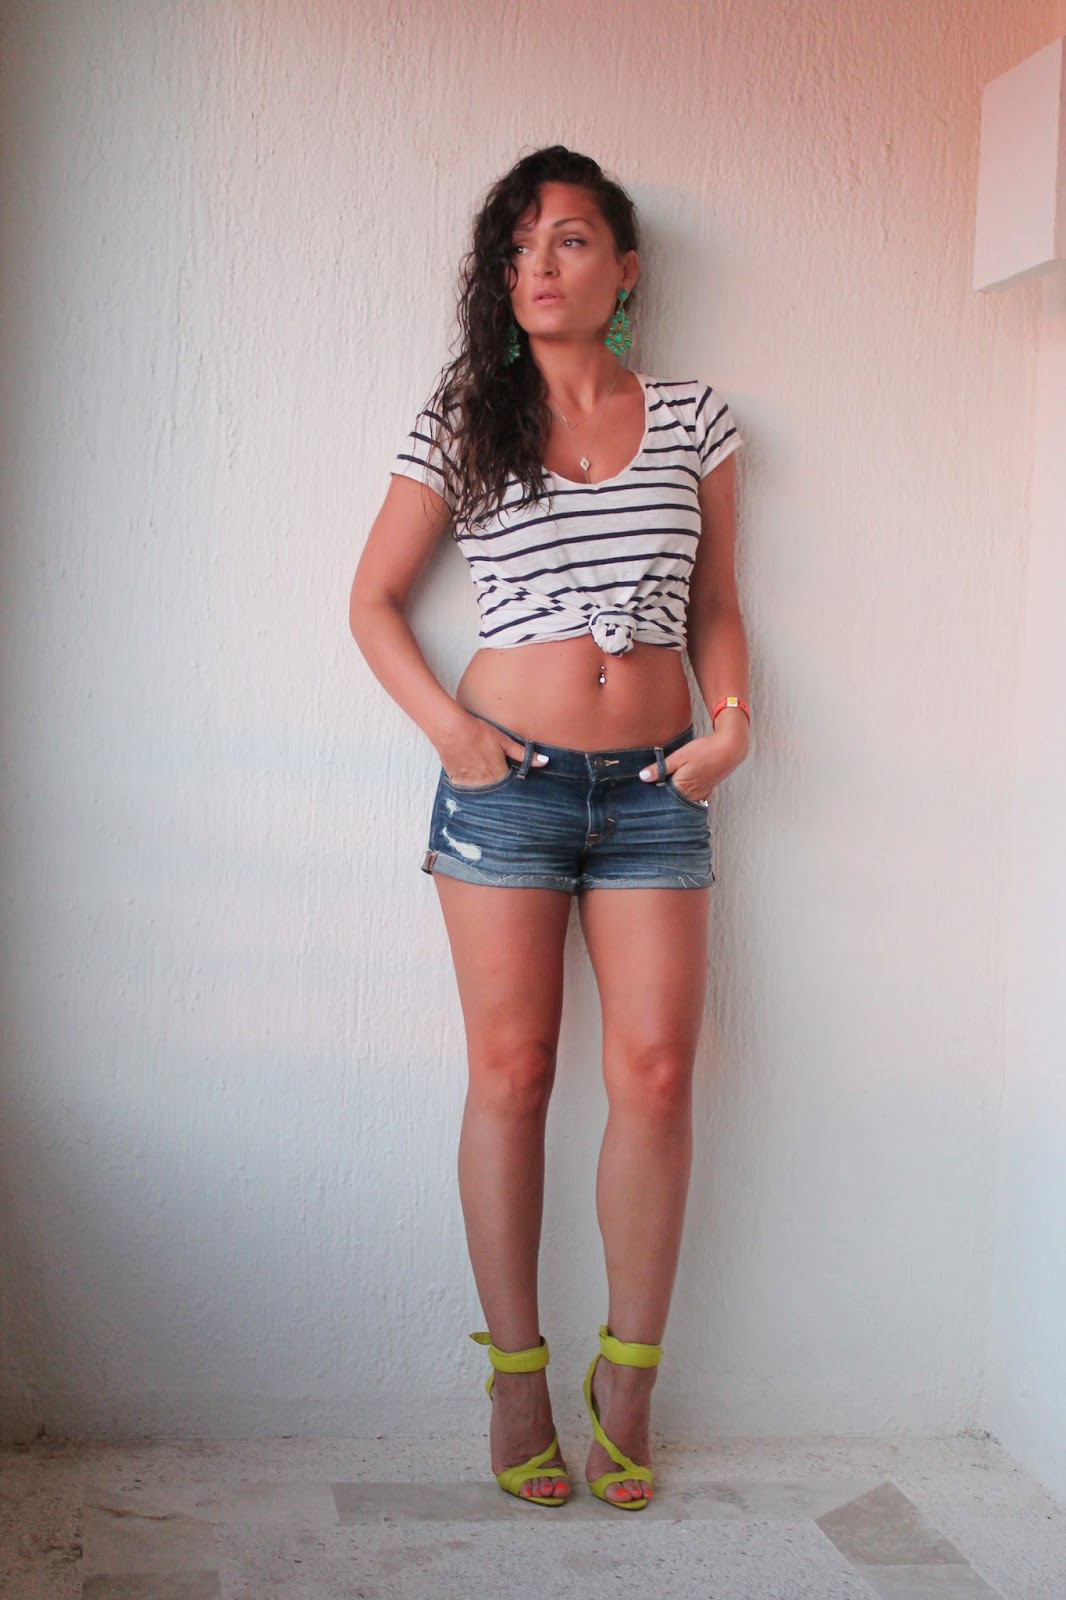 Abercrombie & Fitch shorts, cropped top, Briant Atwood sandals, blogerke, canadian fashion blogger, toronto street style, moda, summer outfit